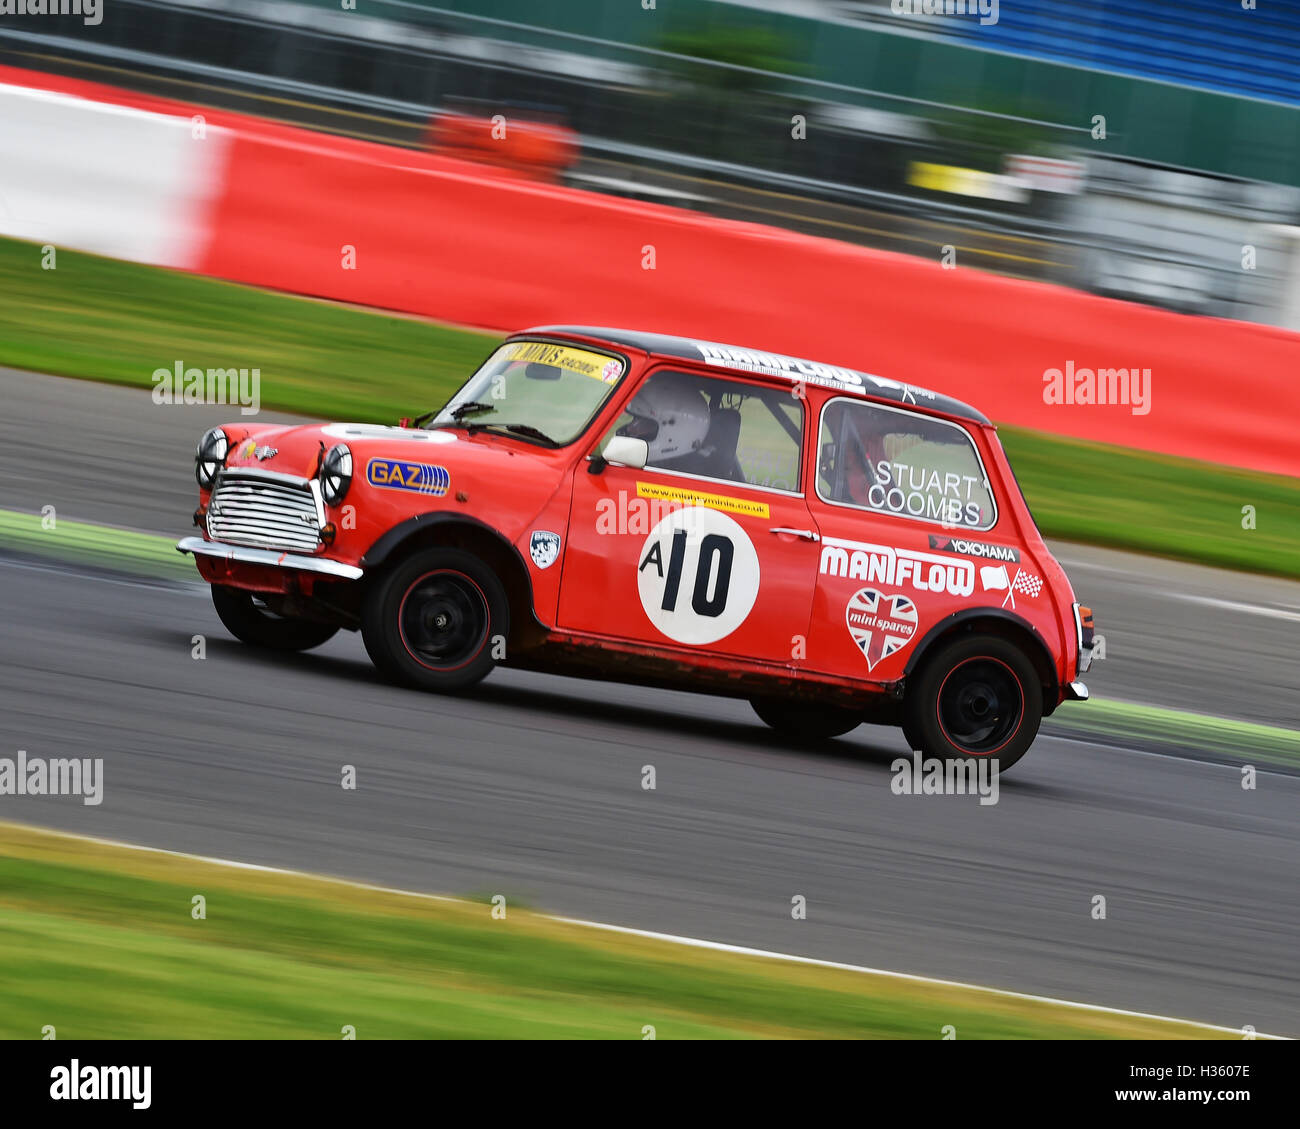 Stuart Coombes, Mighty Mini, 1275, Mighty Mini Championship, Saturday, Silverstone, Silverstone truck festival, - Stock Image